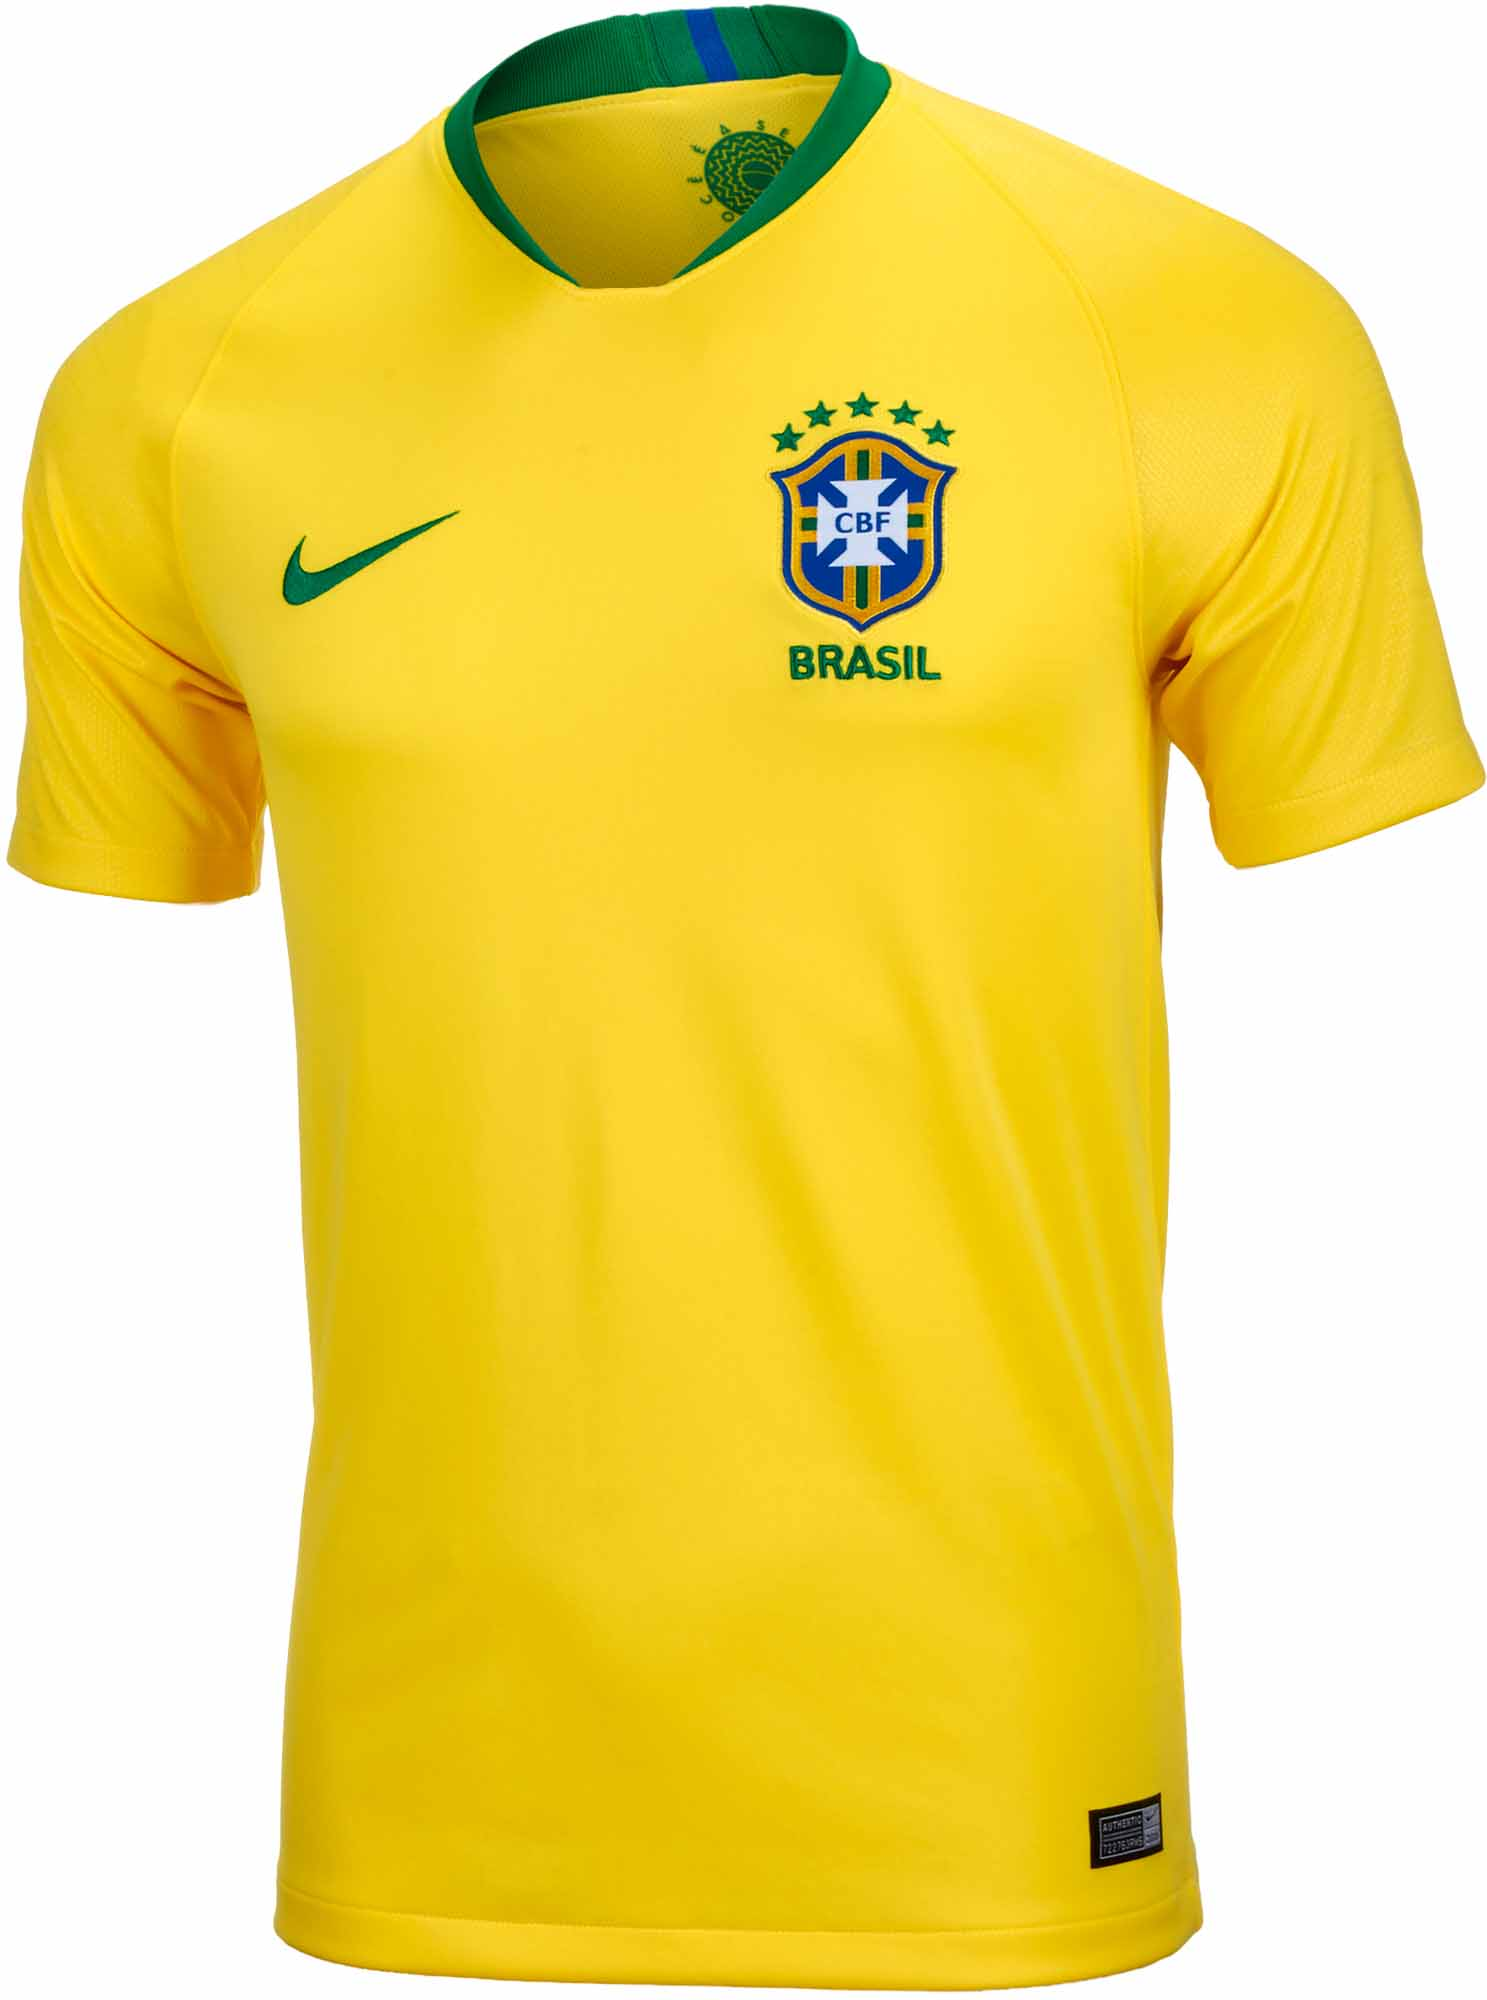 6bb6fb04d30 Nike Brazil Home Jersey - Youth 2018-19 NS - Soccer Master